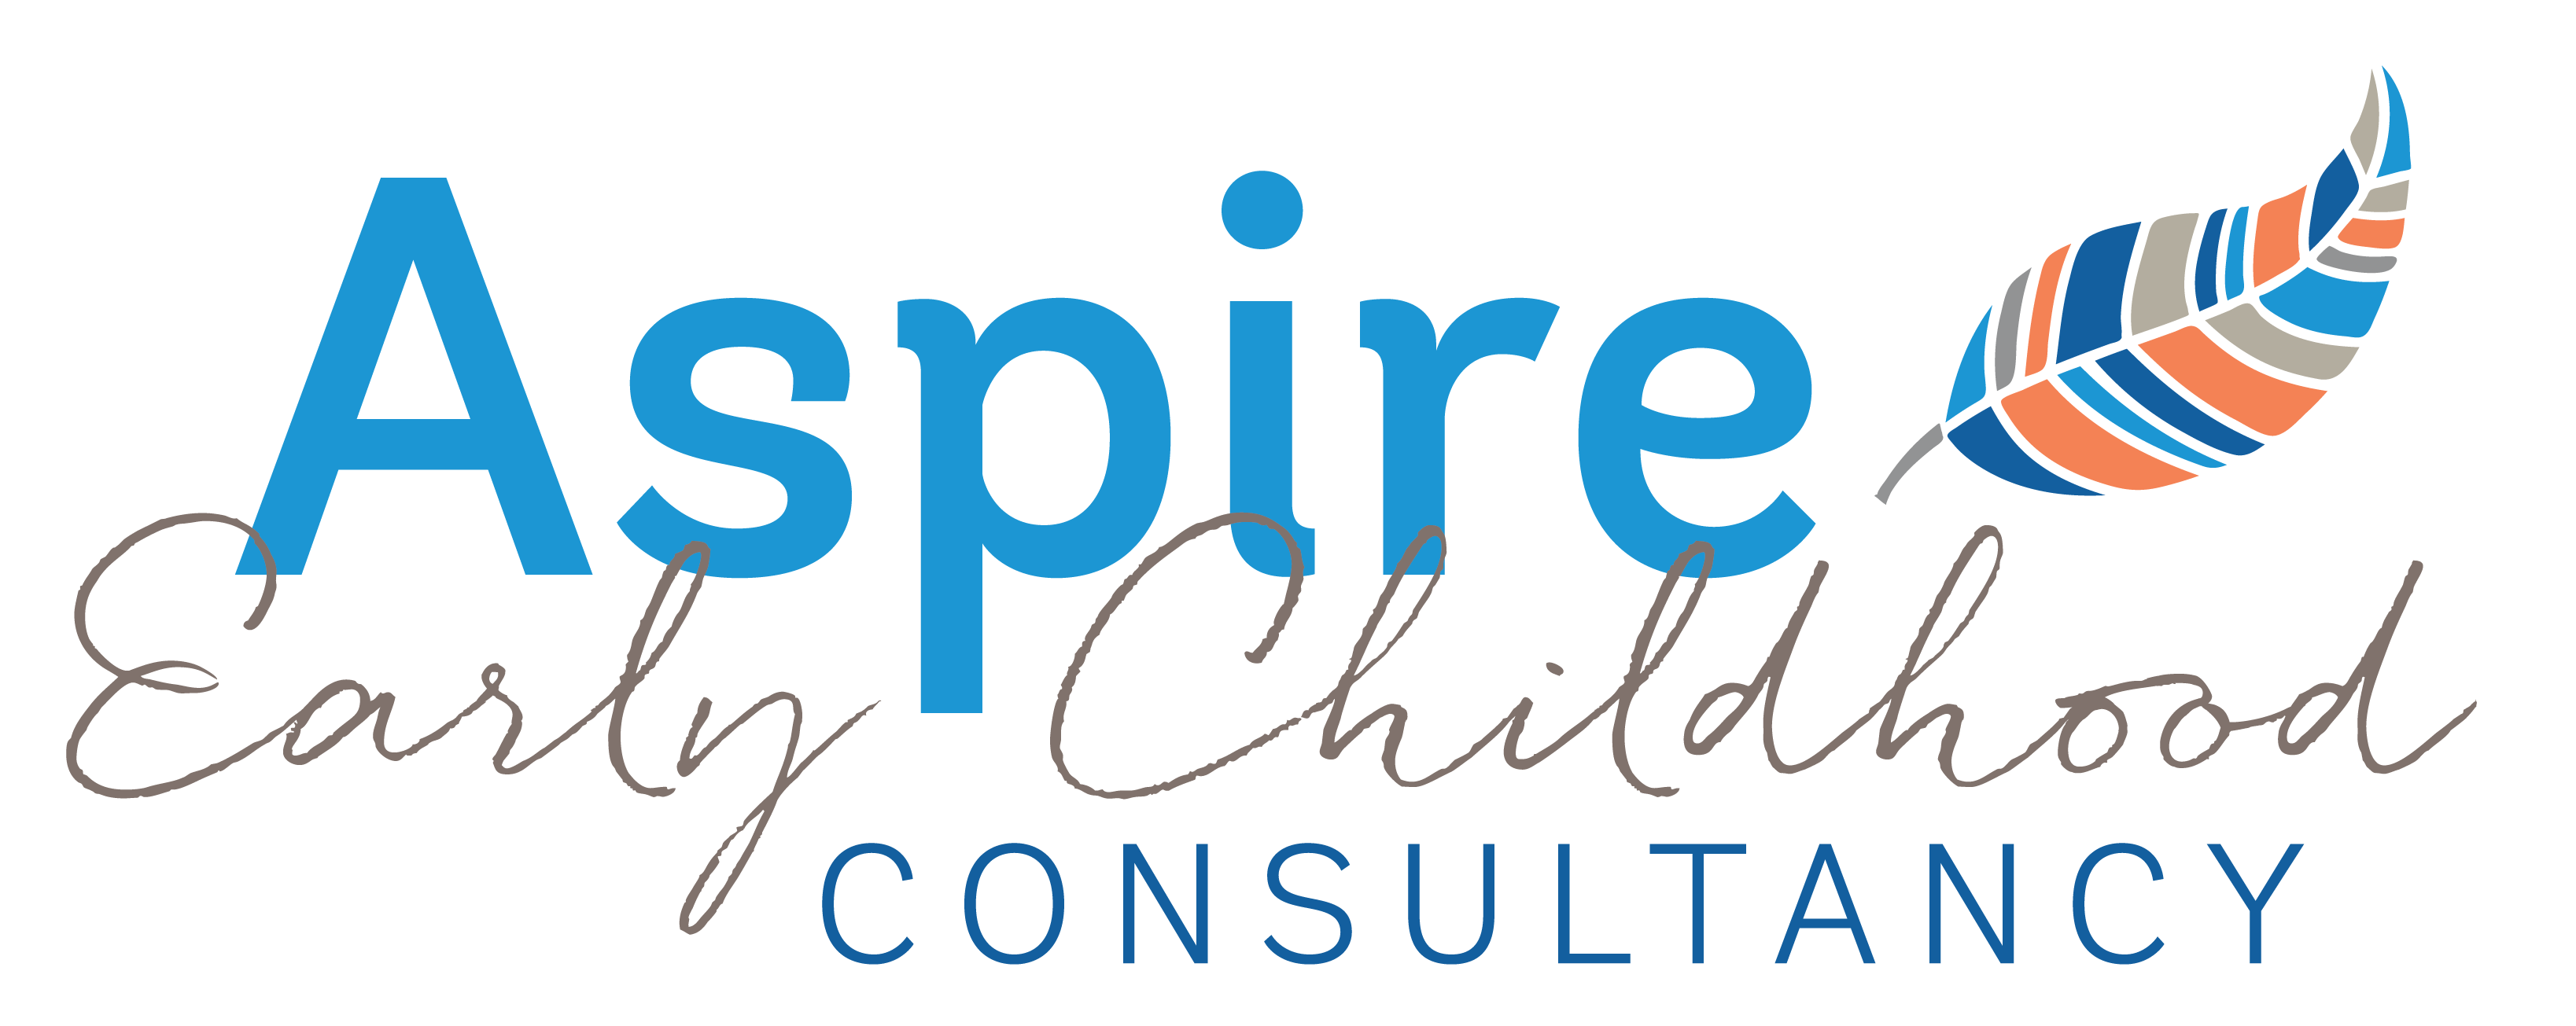 Aspire Early Childhood Consultancy